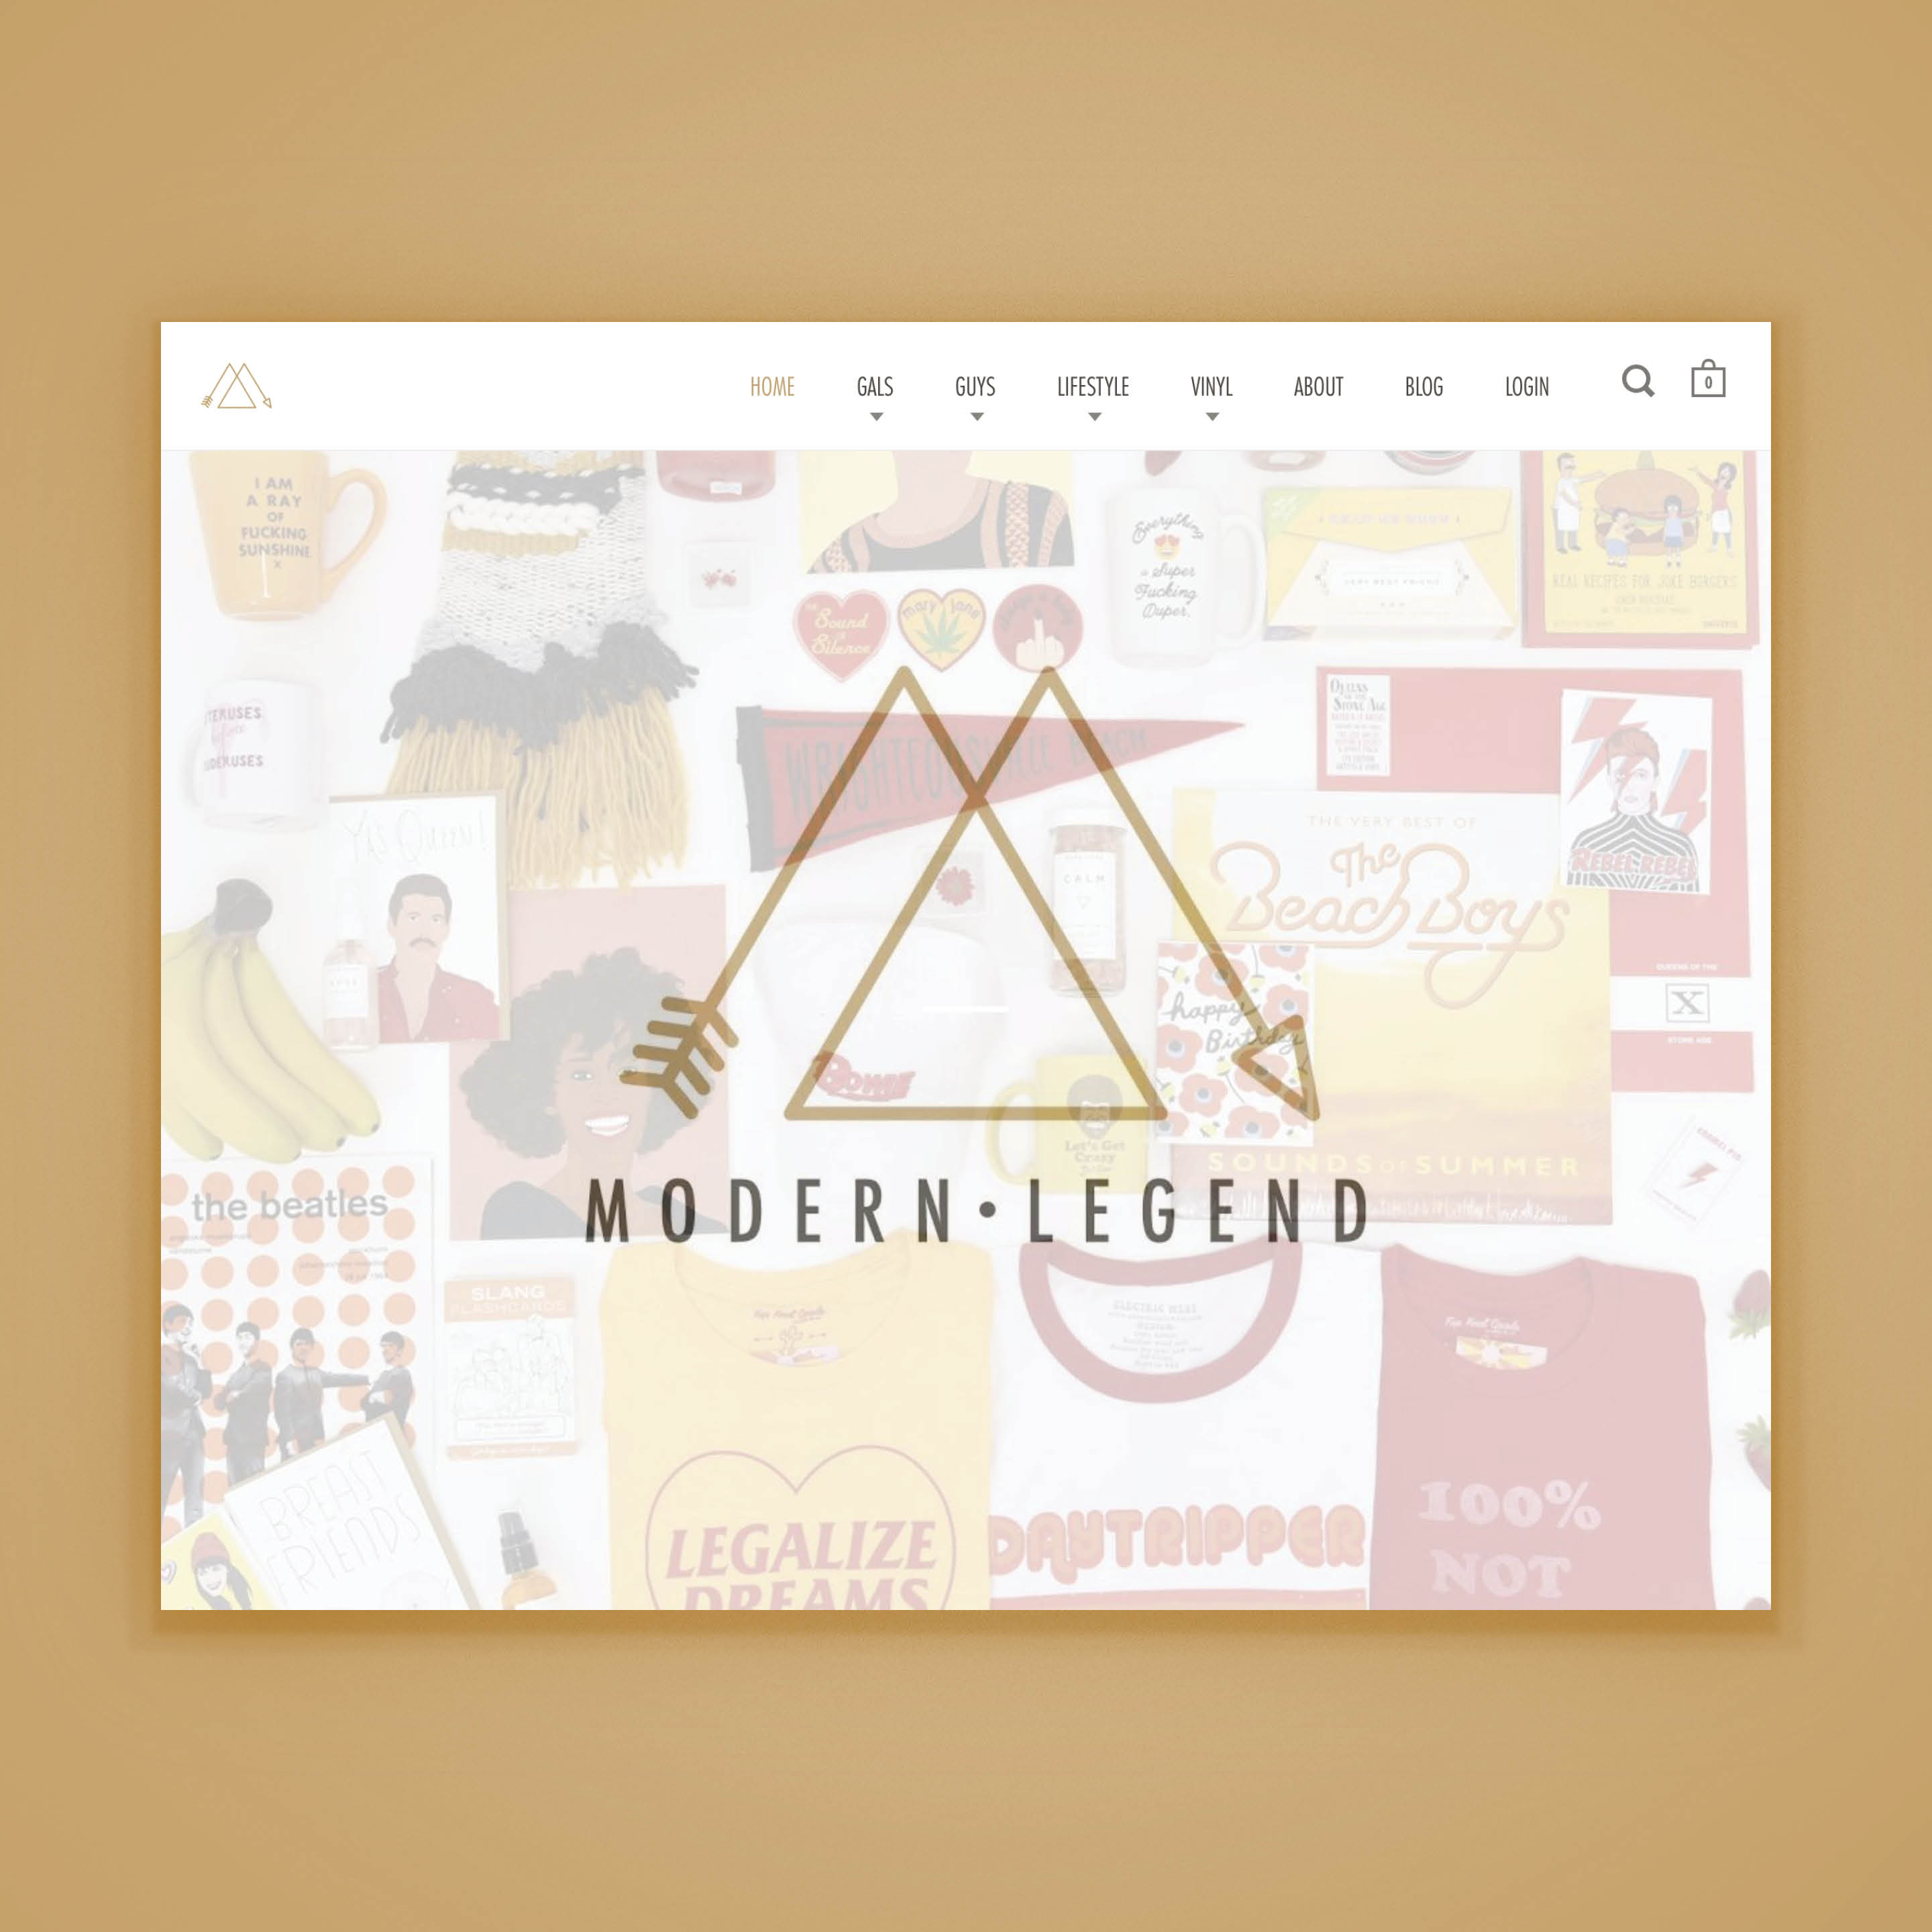 Modern Legend E-Commerce Website Design by Brand Engine